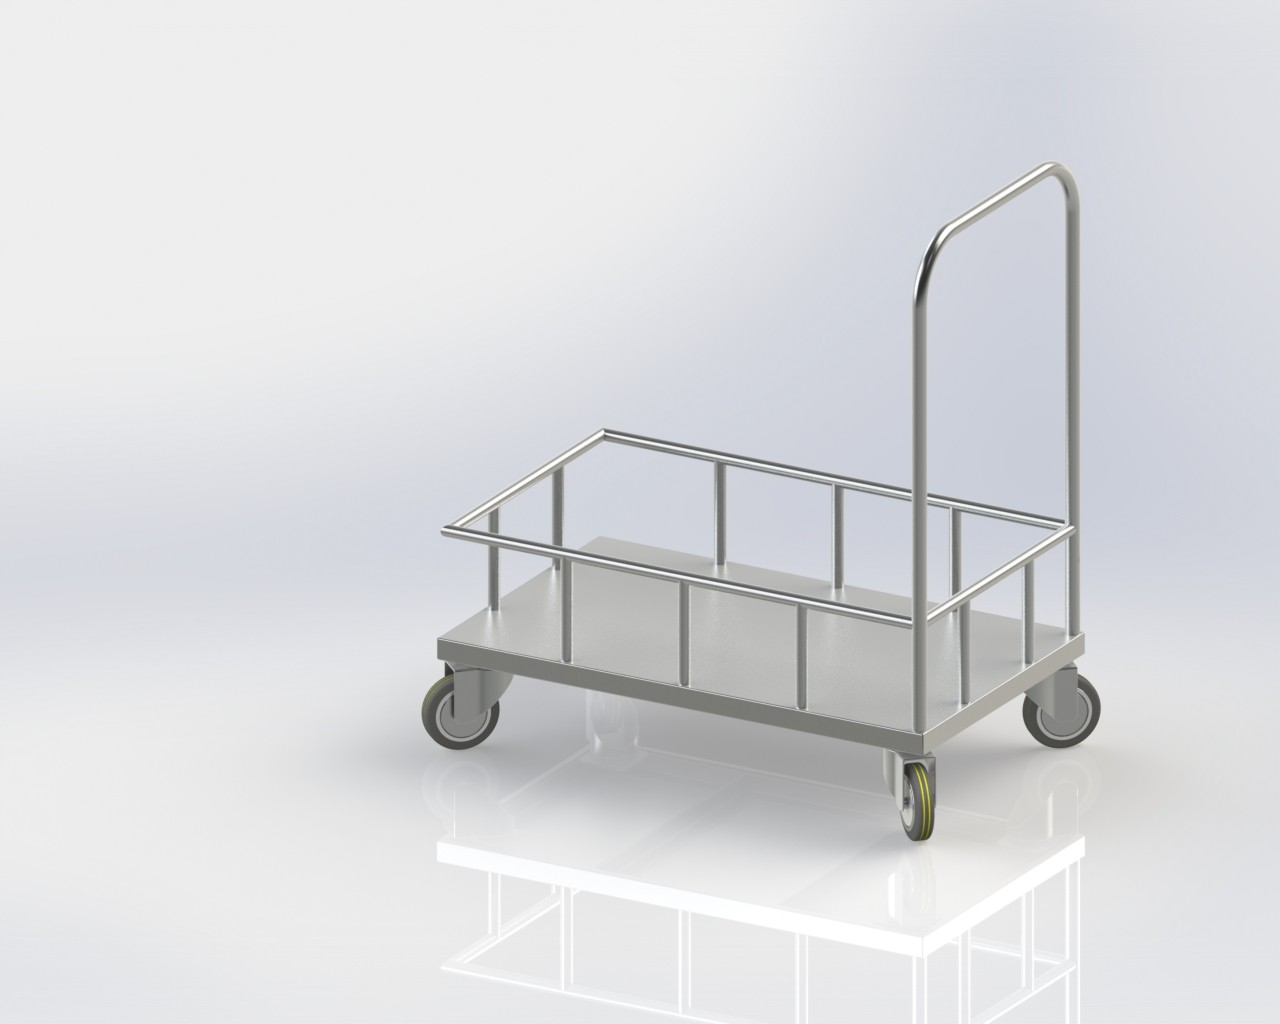 commercial Luggage Trolley for kitchen's store room